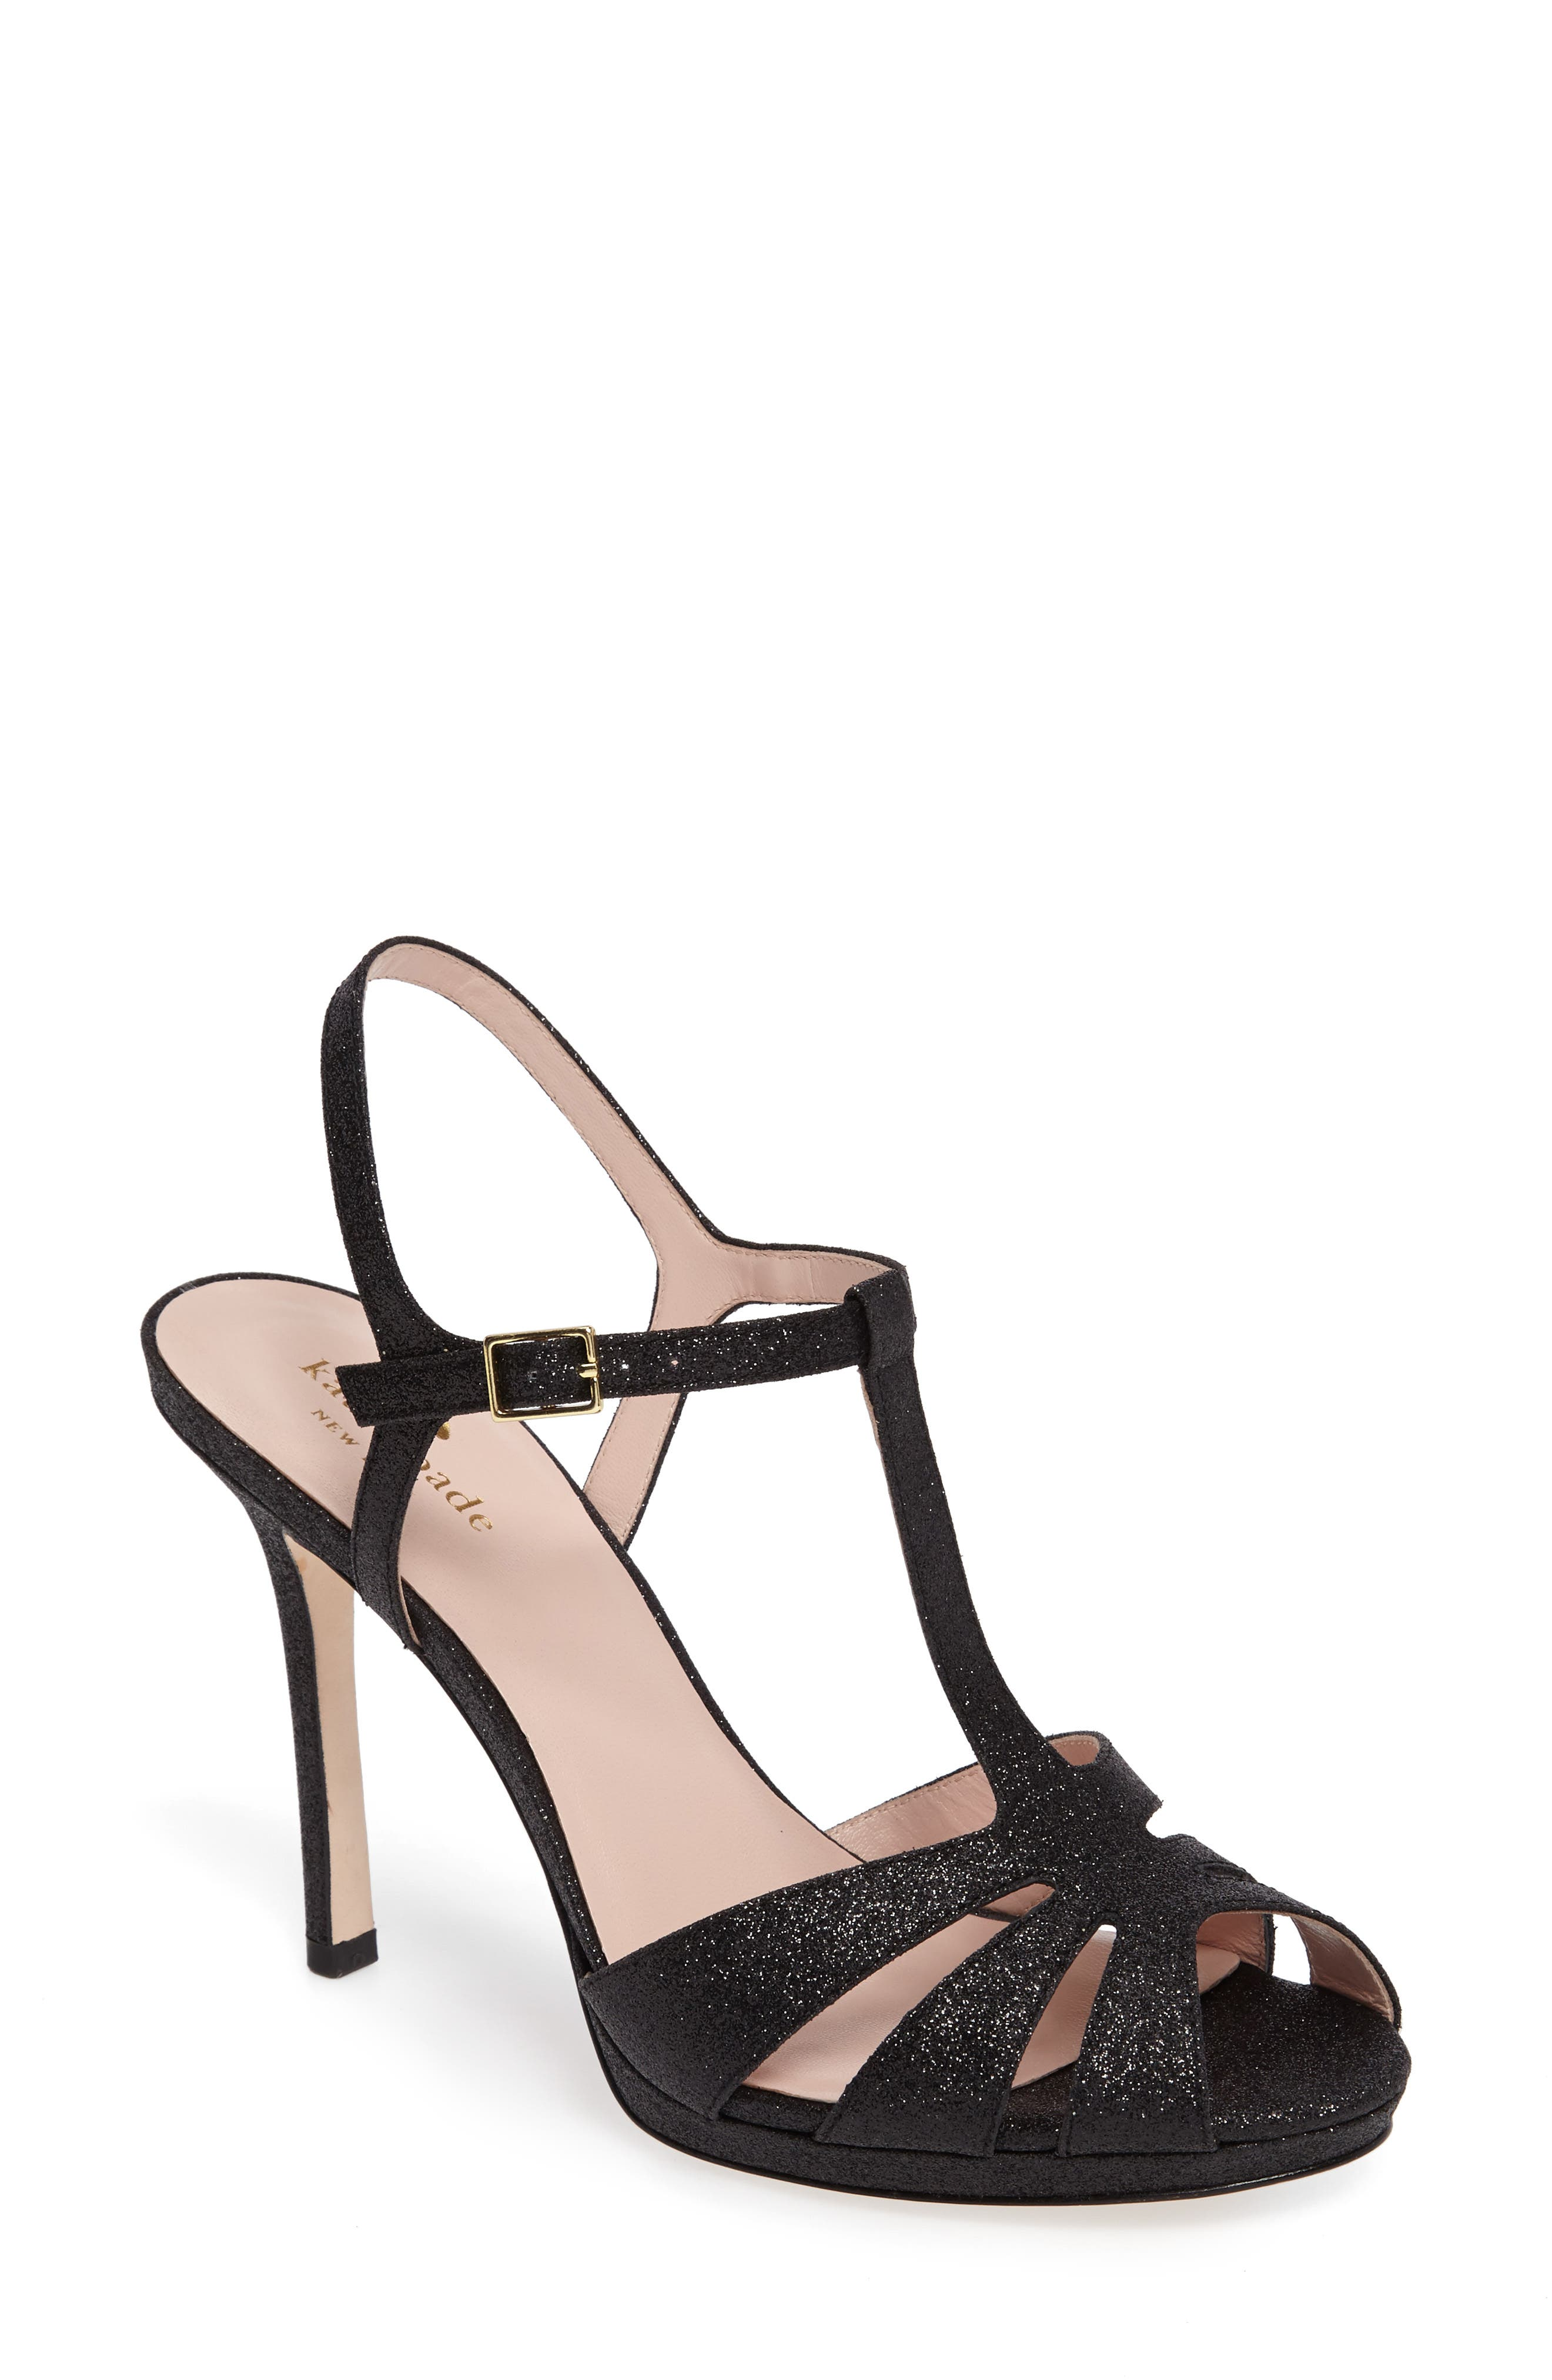 kate spade new york feodora sandal (Women)